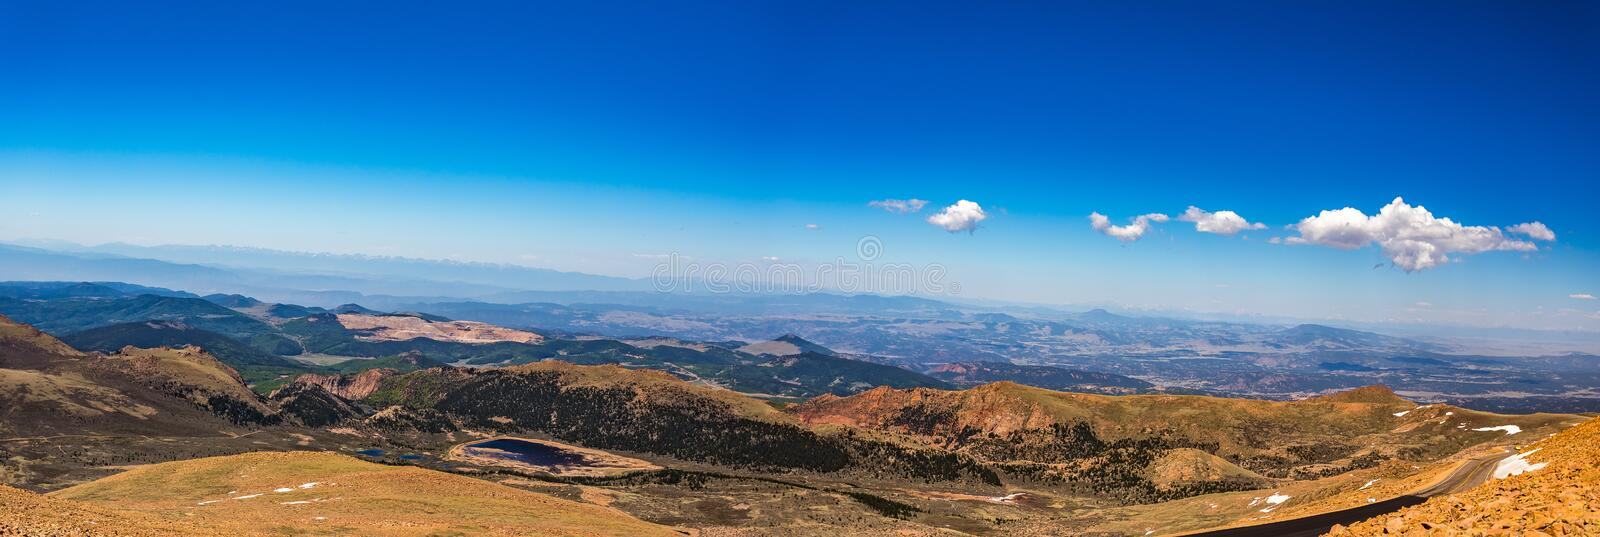 Pikes Peak Colorado. Pikes Peak is the highest summit of the southern Front Range of the Rocky Mountains. The ultra-prominent fourteener is located in Pike royalty free stock photos